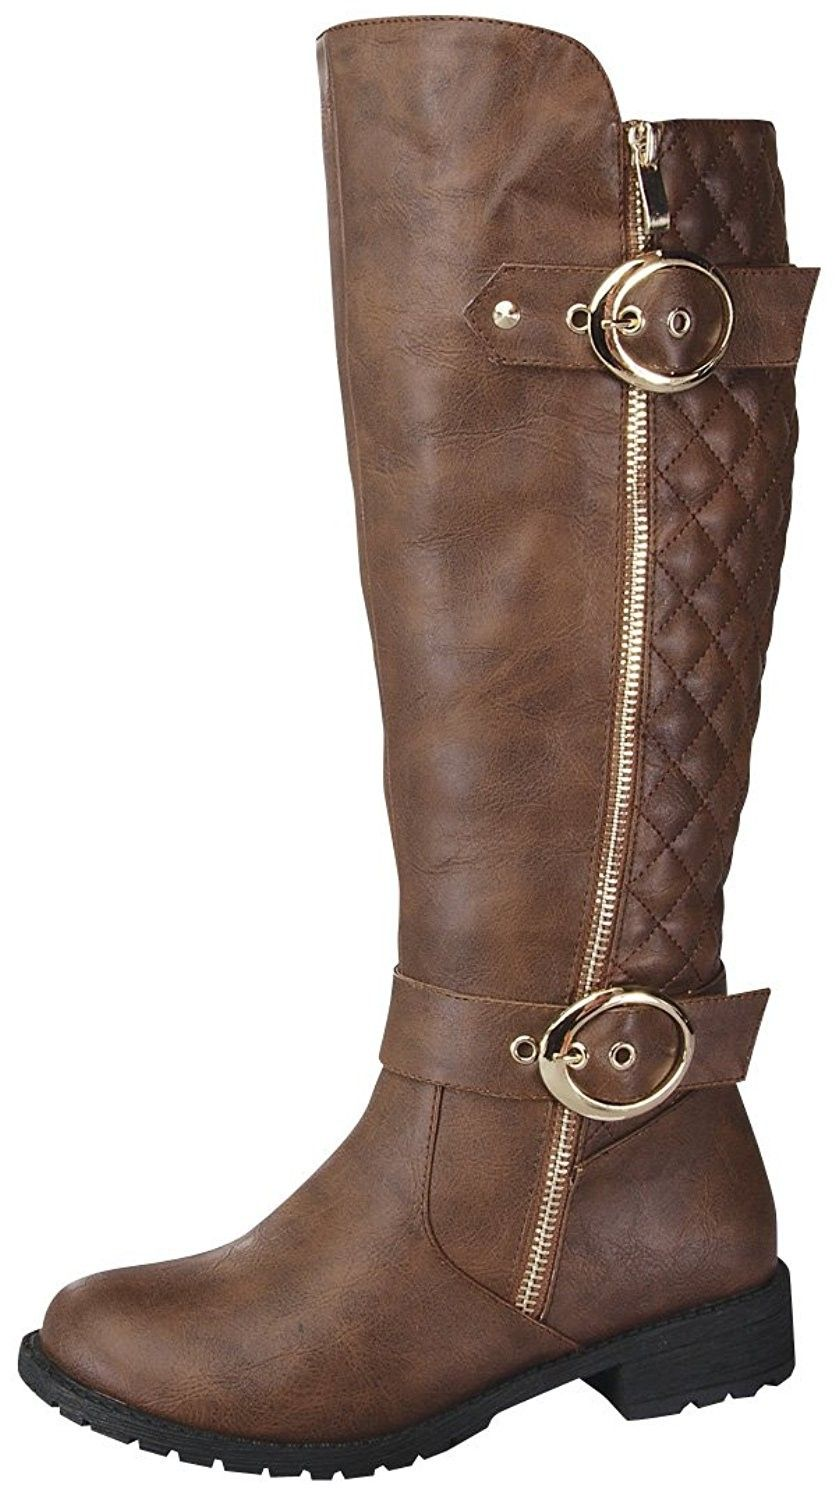 Women S Paper 33 Knee High Quilted Leather Buckle Zip Riding Boot Brown Cf1250i6tdz Boots Riding Boots Brown Boots